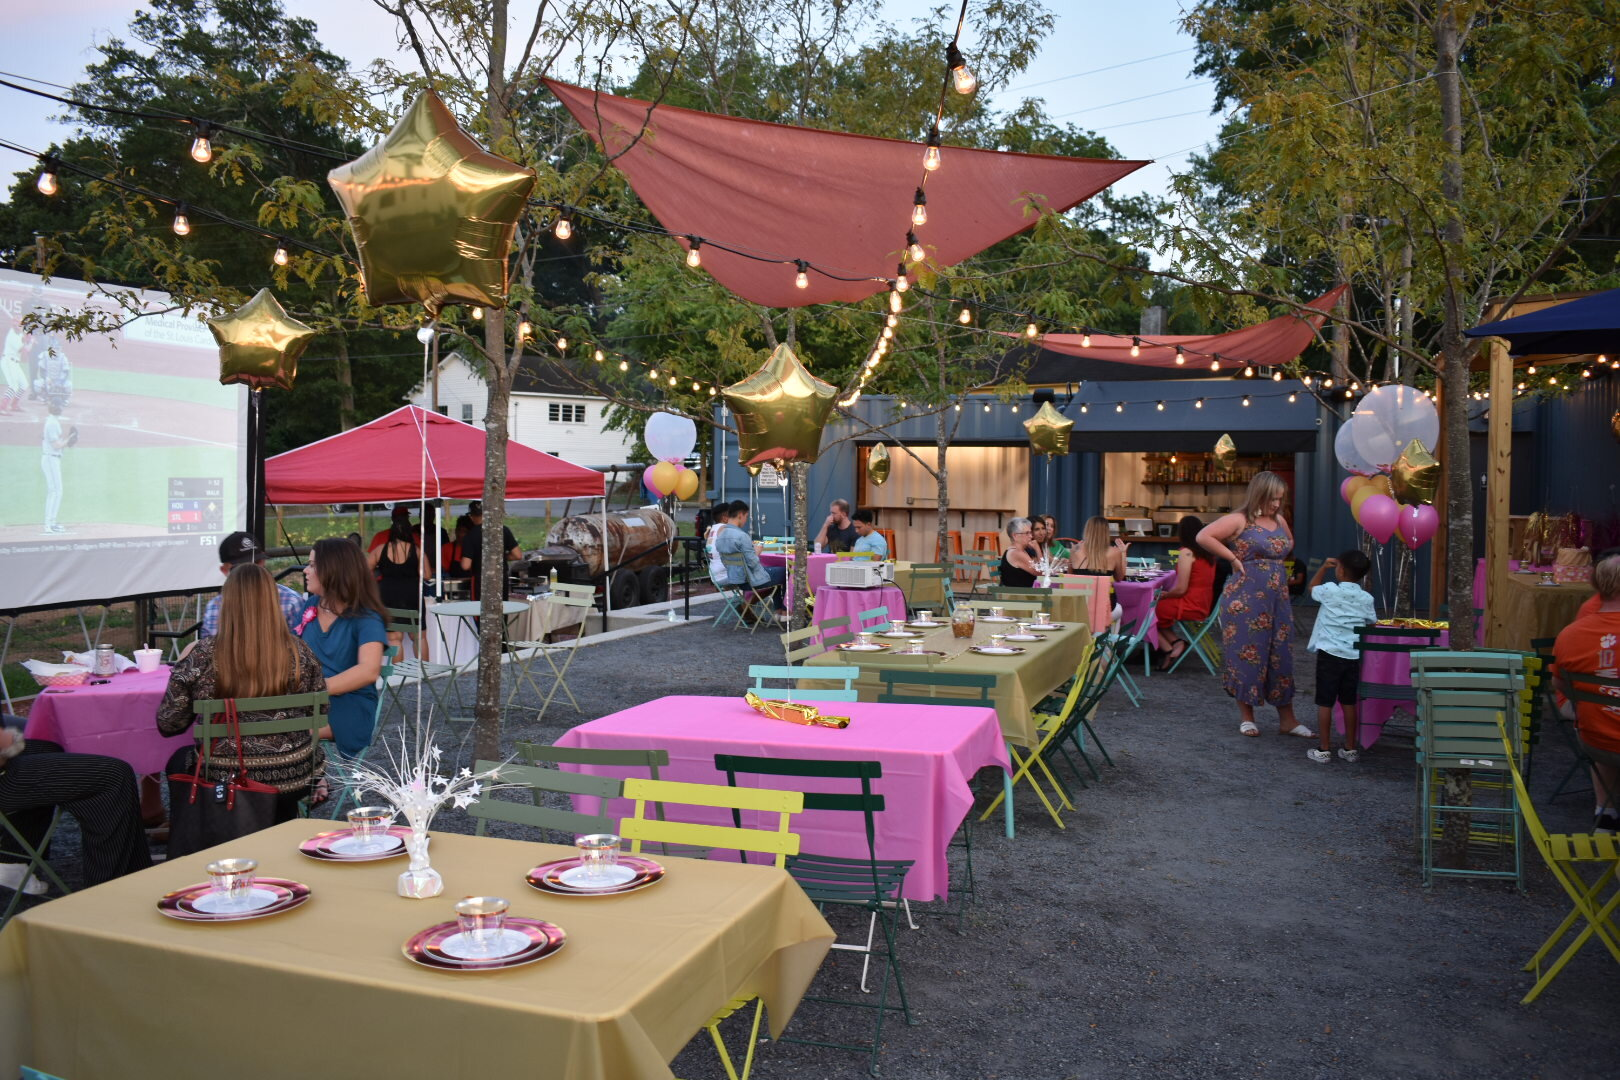 rent the patio - private parties